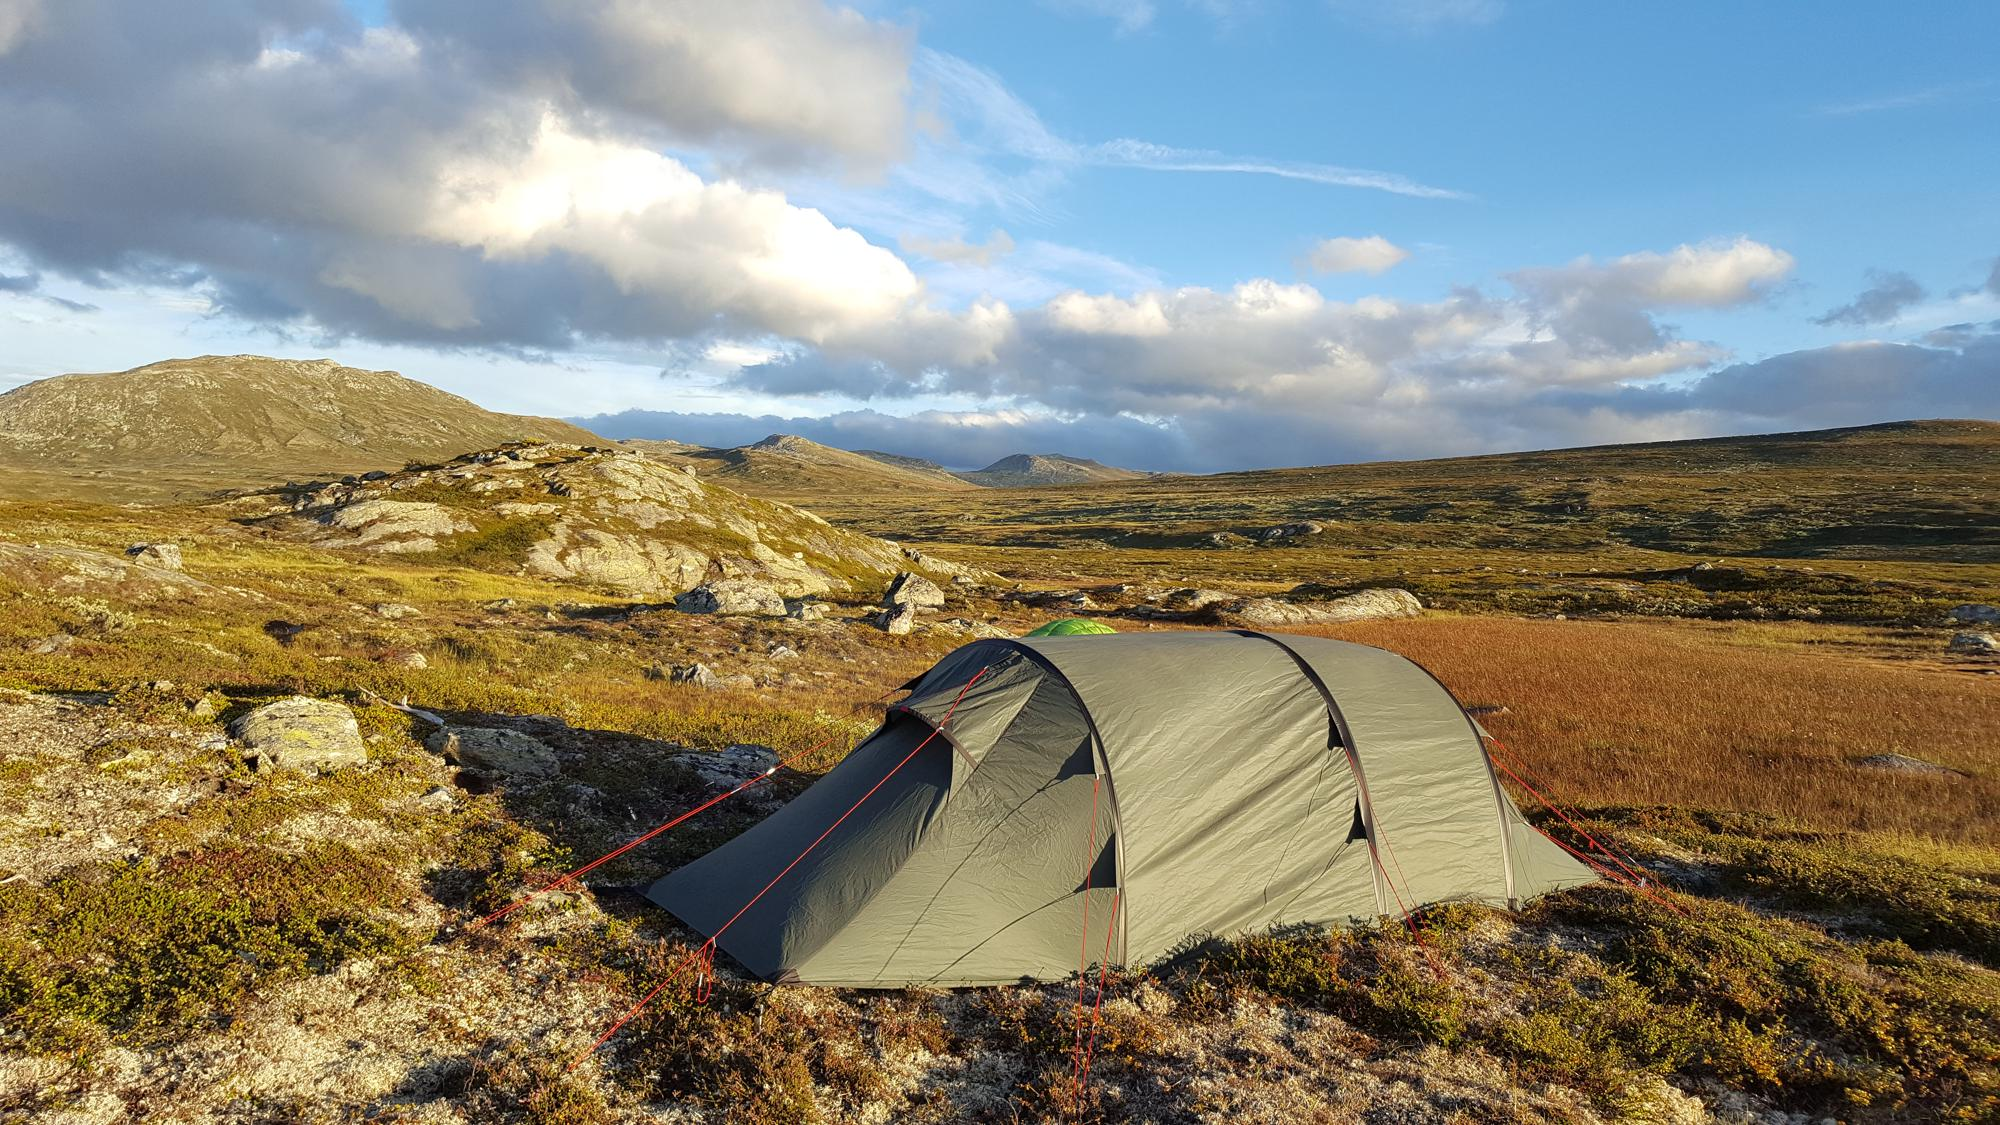 Wild Camping in Wales